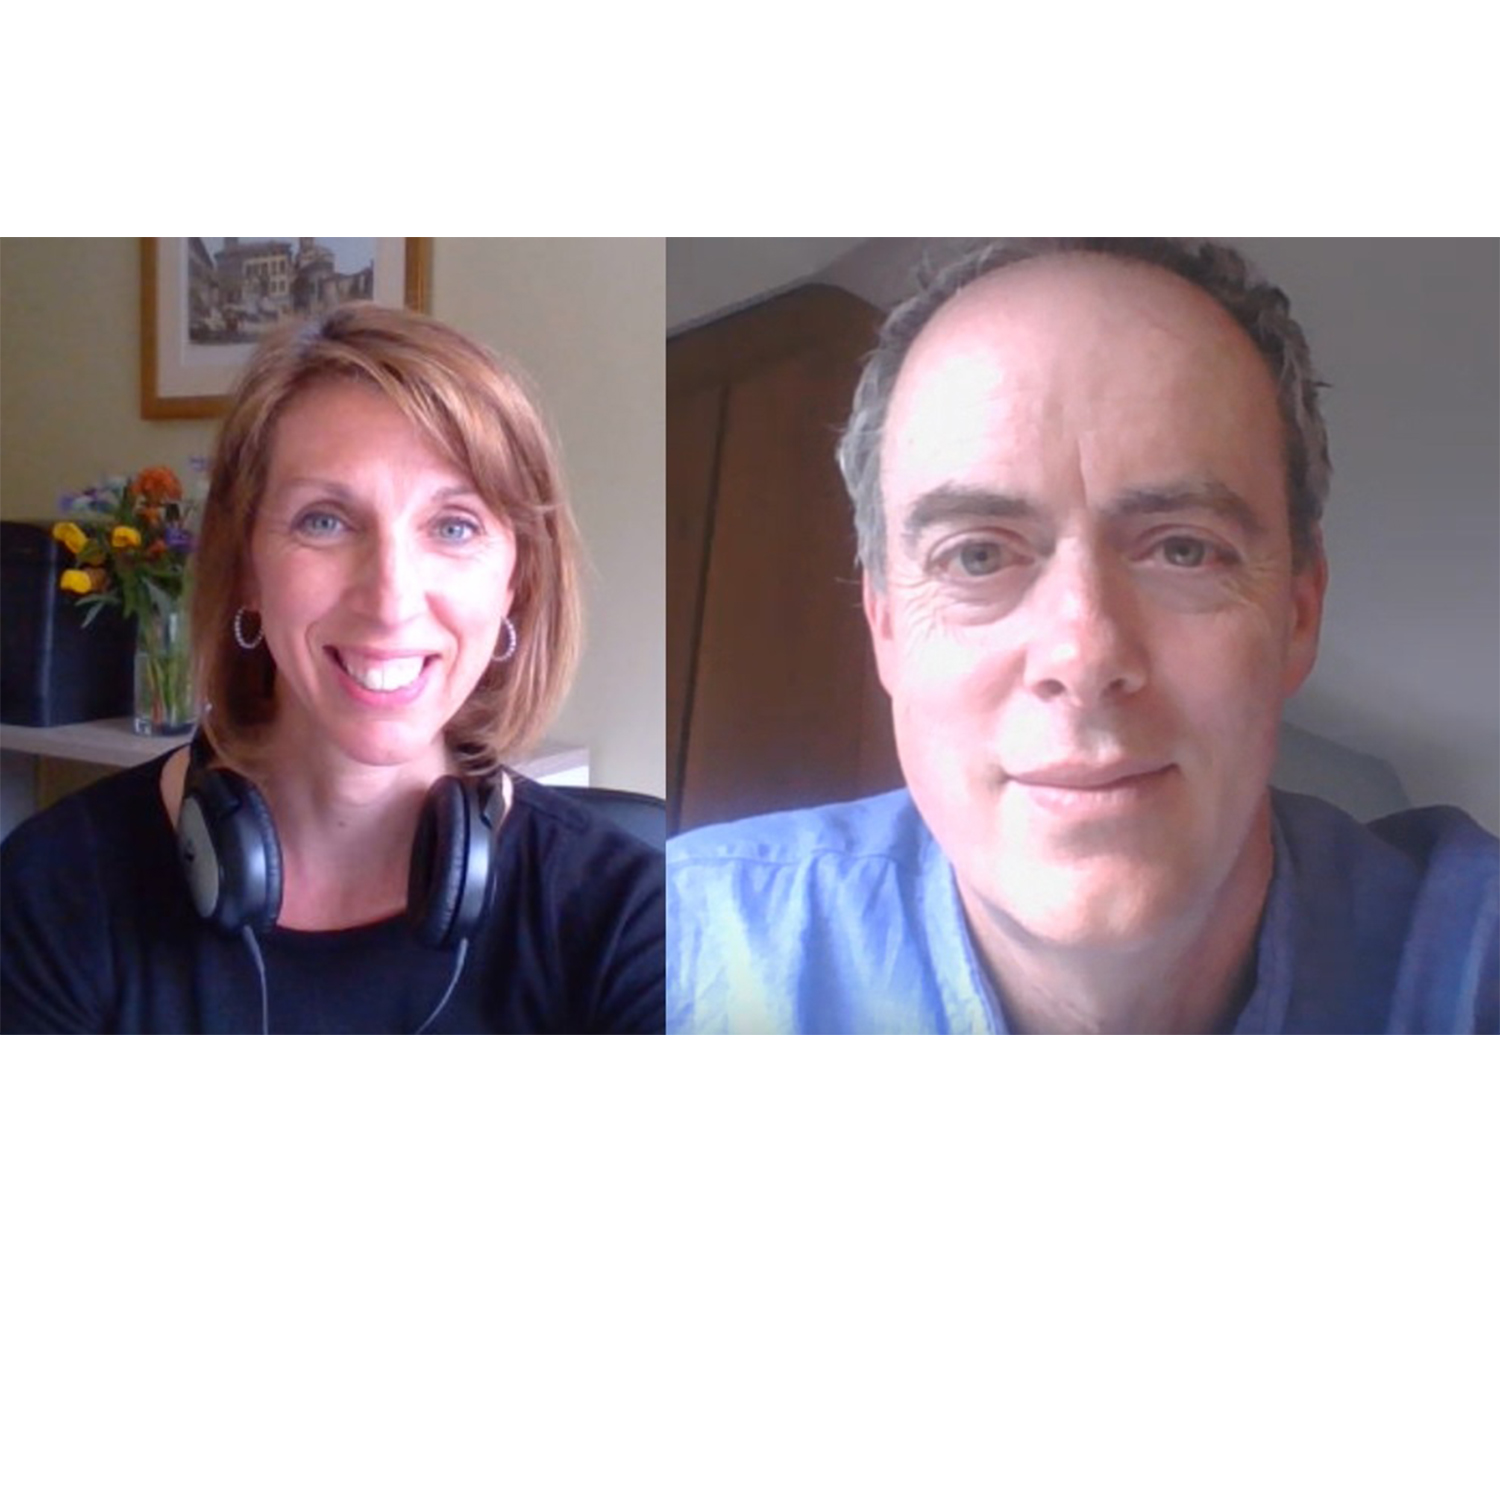 064 Early Menopause and Fertility - Jon Hughes & Dr Louise Newson